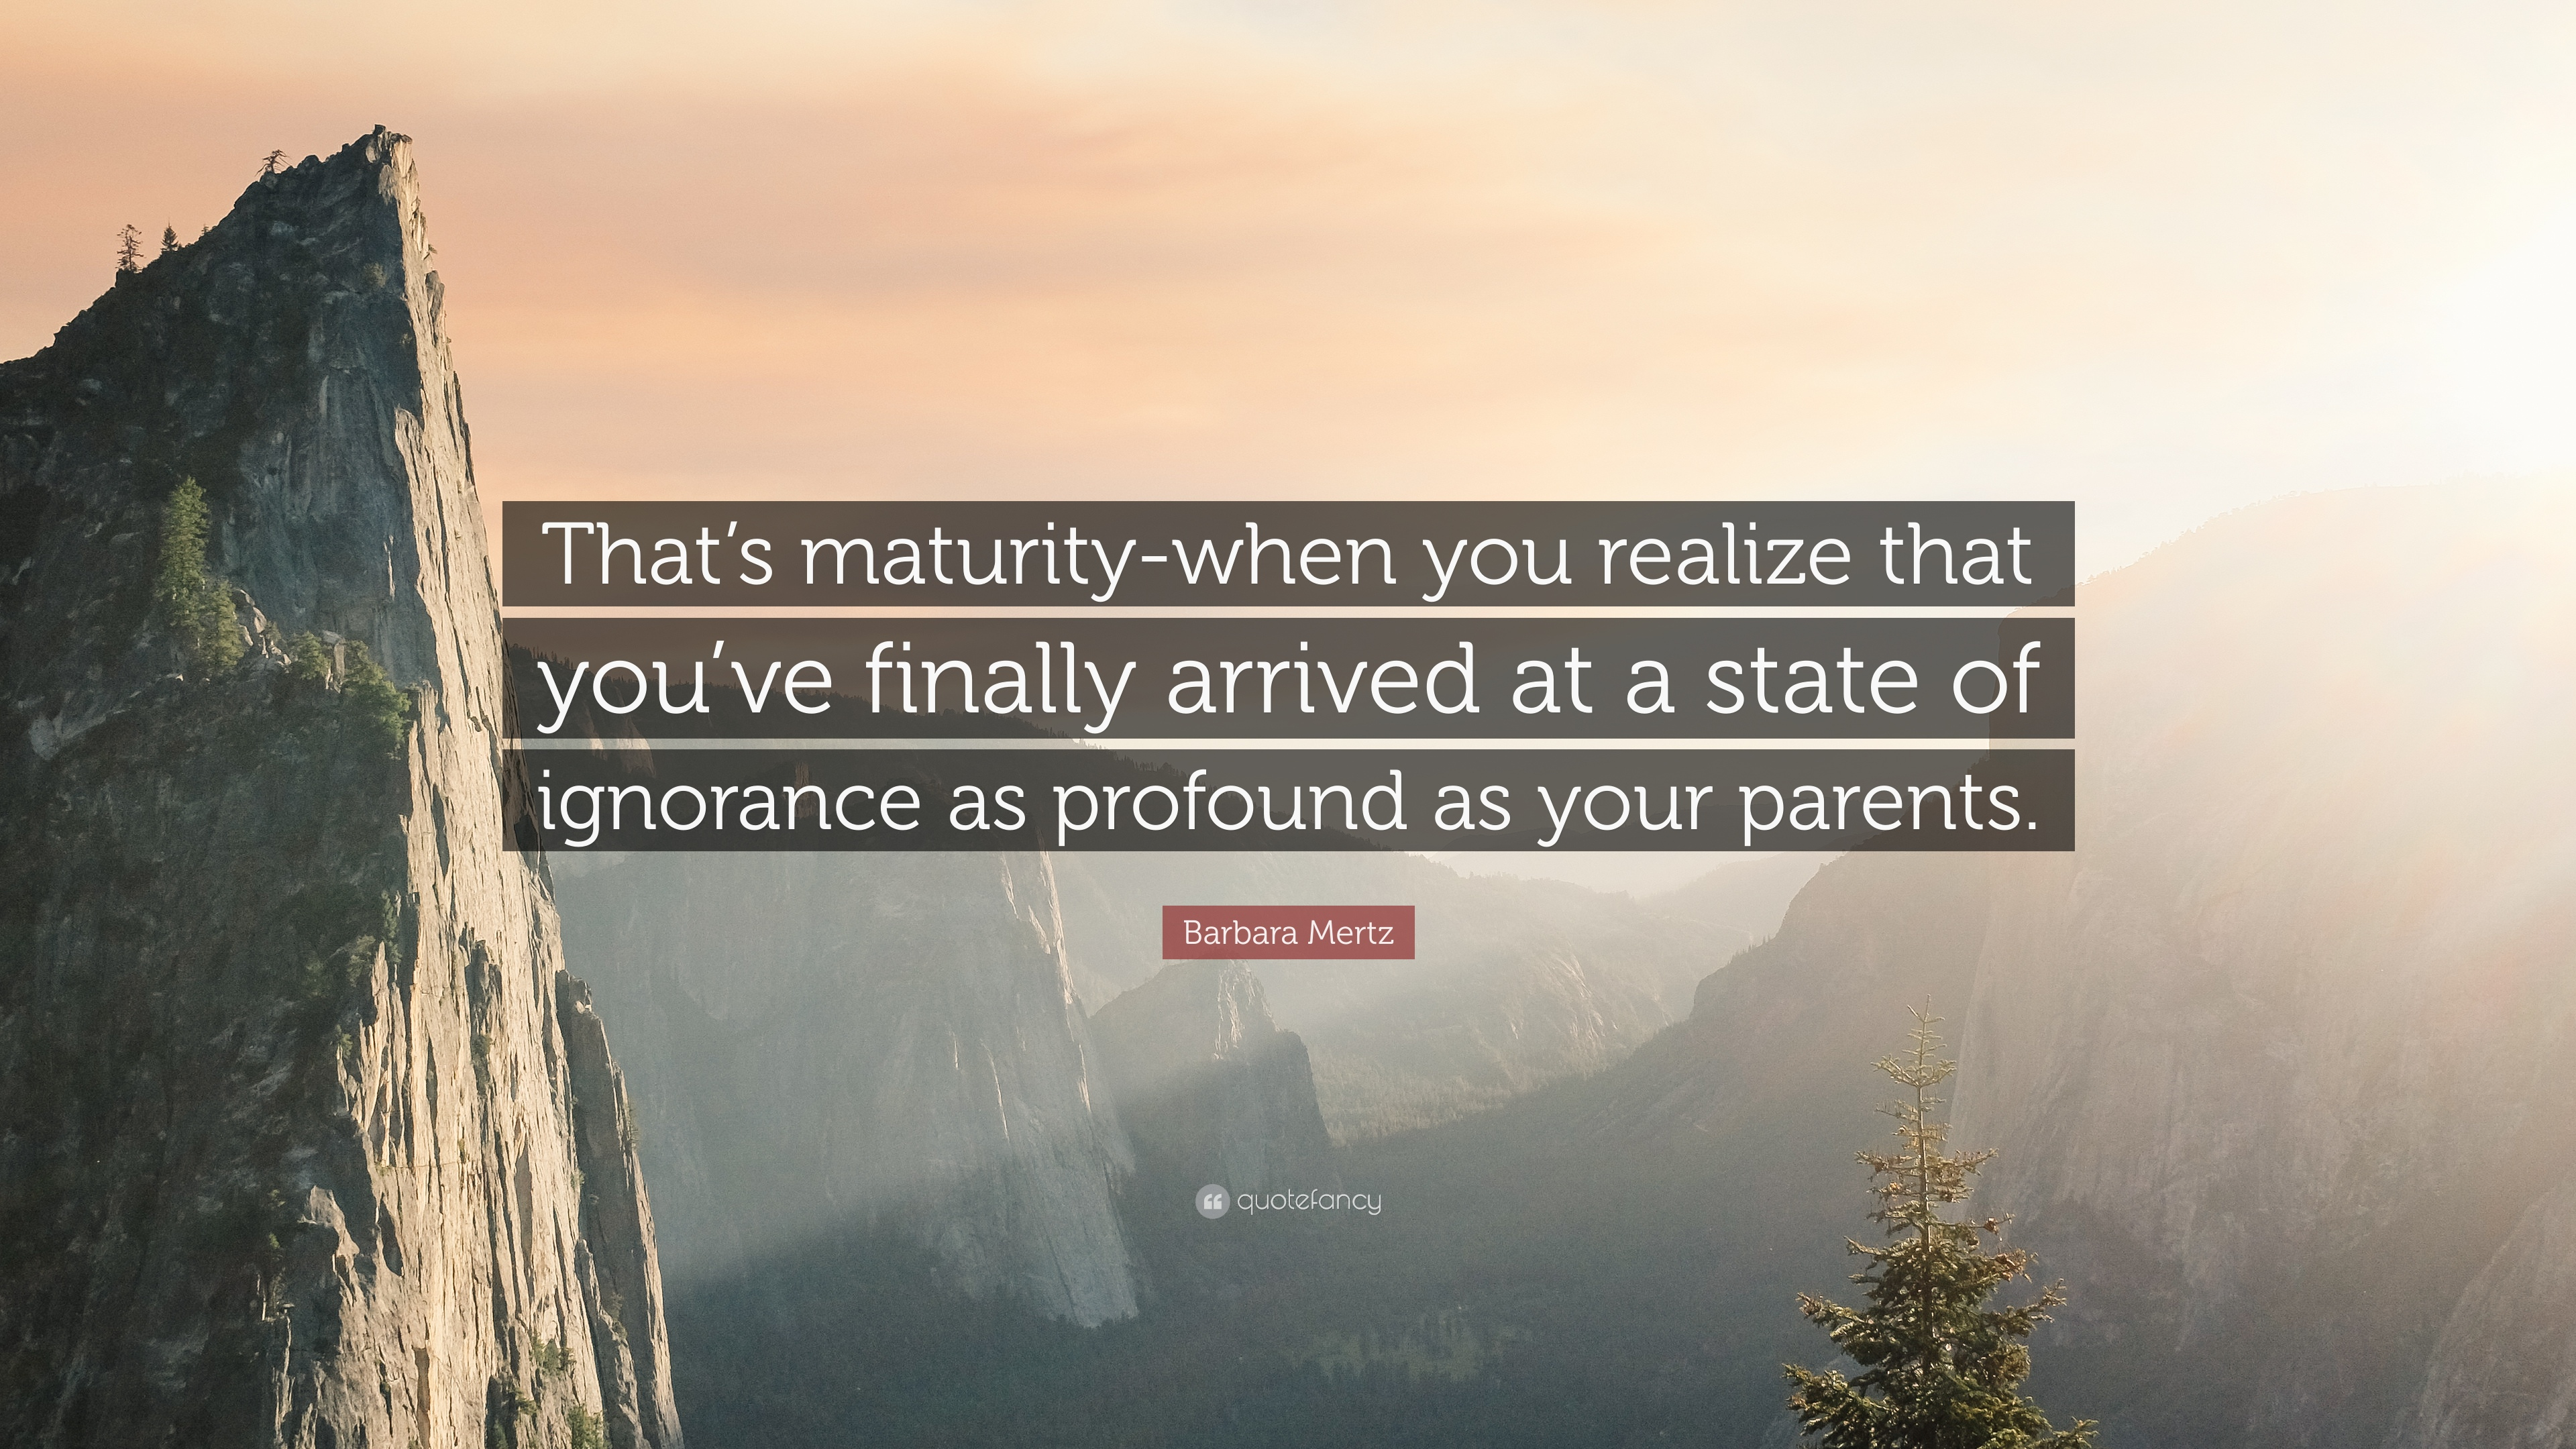 Barbara Mertz Quote That S Maturity When You Realize That You Ve Finally Arrived At A State Of Ignorance As Profound As Your Parents 7 Wallpapers Quotefancy